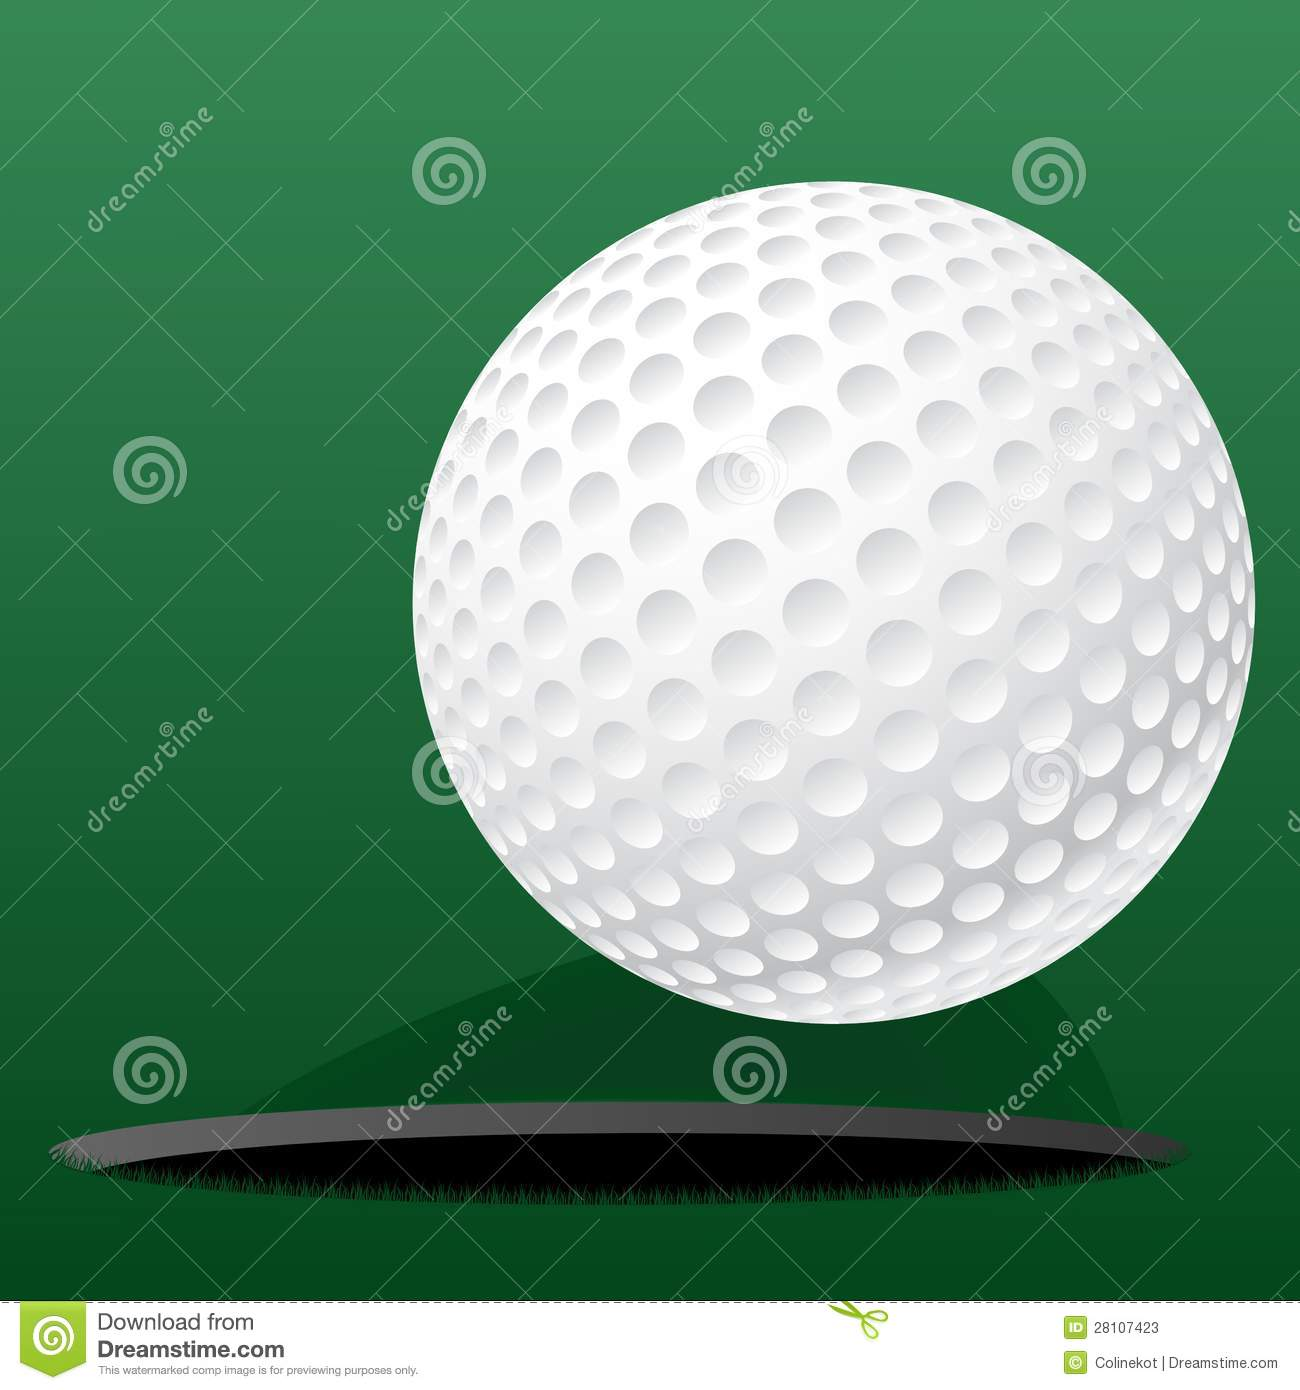 Golf ball rolling into the hole